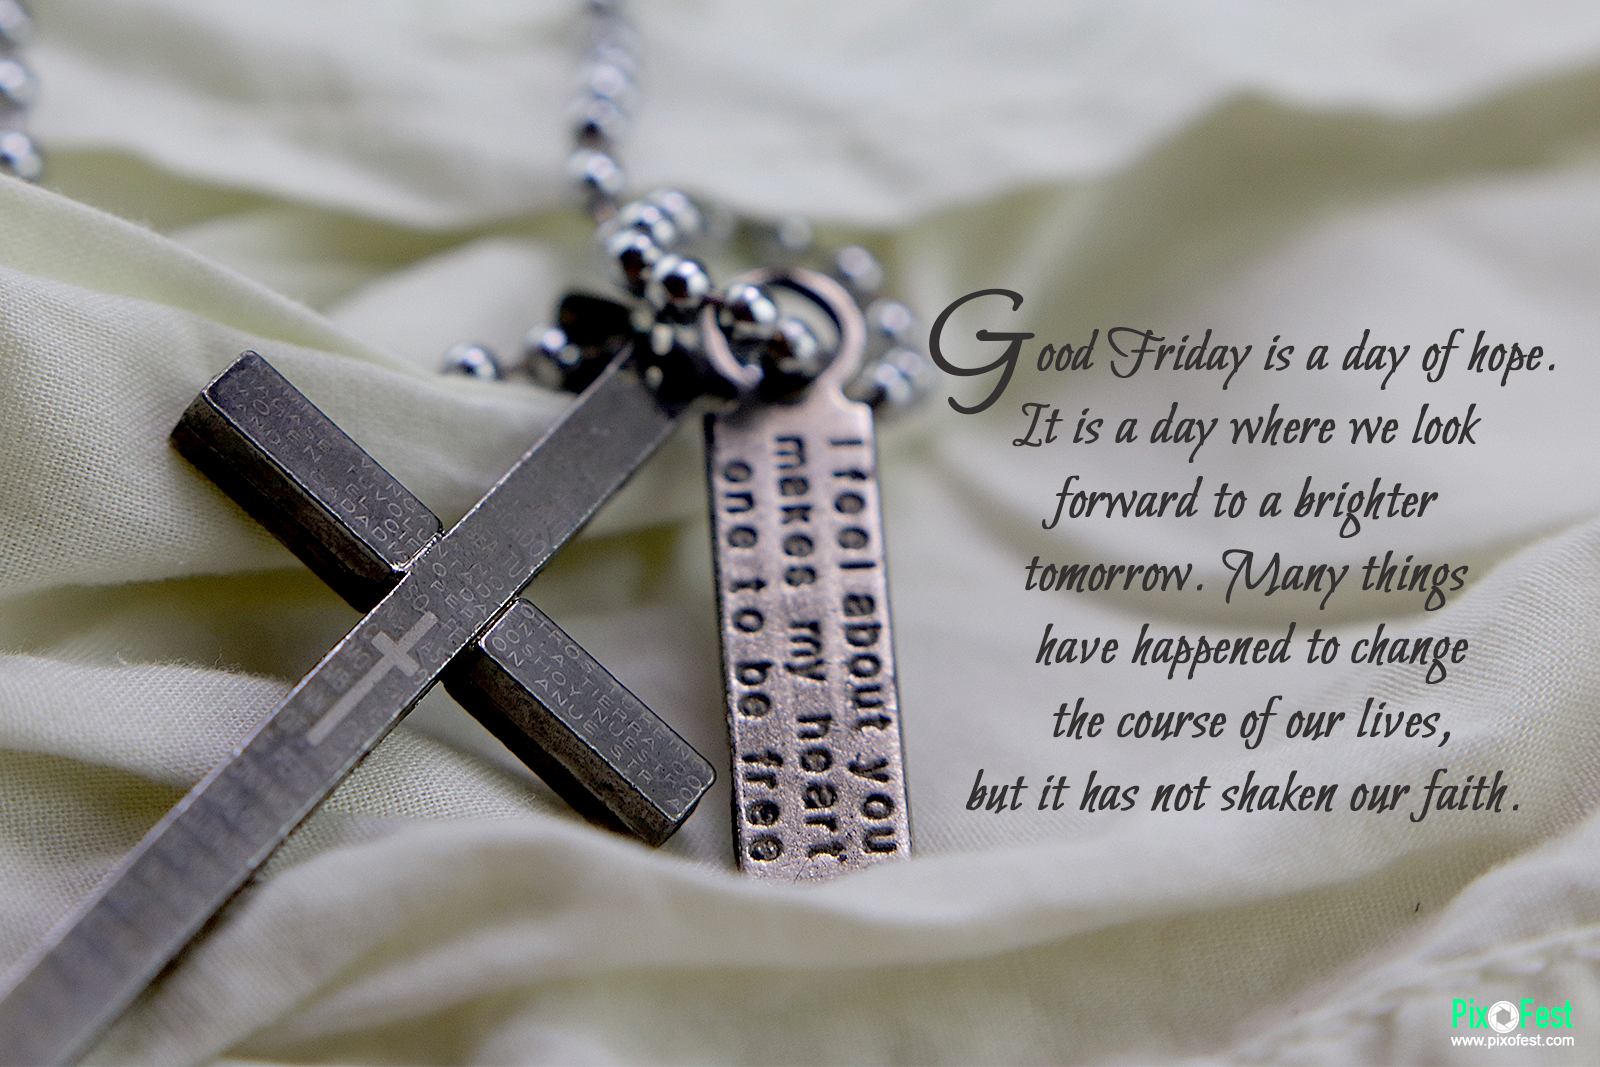 Good Friday_04, Good Friday,Jesus text,Blood text Jesus,Jesus blood text,Good freiday blood text,Jesus text wallpaper,jesus blood text wallpaperChristian holiday , final words from the cross,Good Friday2019,Cross,crucifixion of Jesus,Holy Friday, Great Friday,Black Friday,Date of Good Friday, legal holiday,Baptism